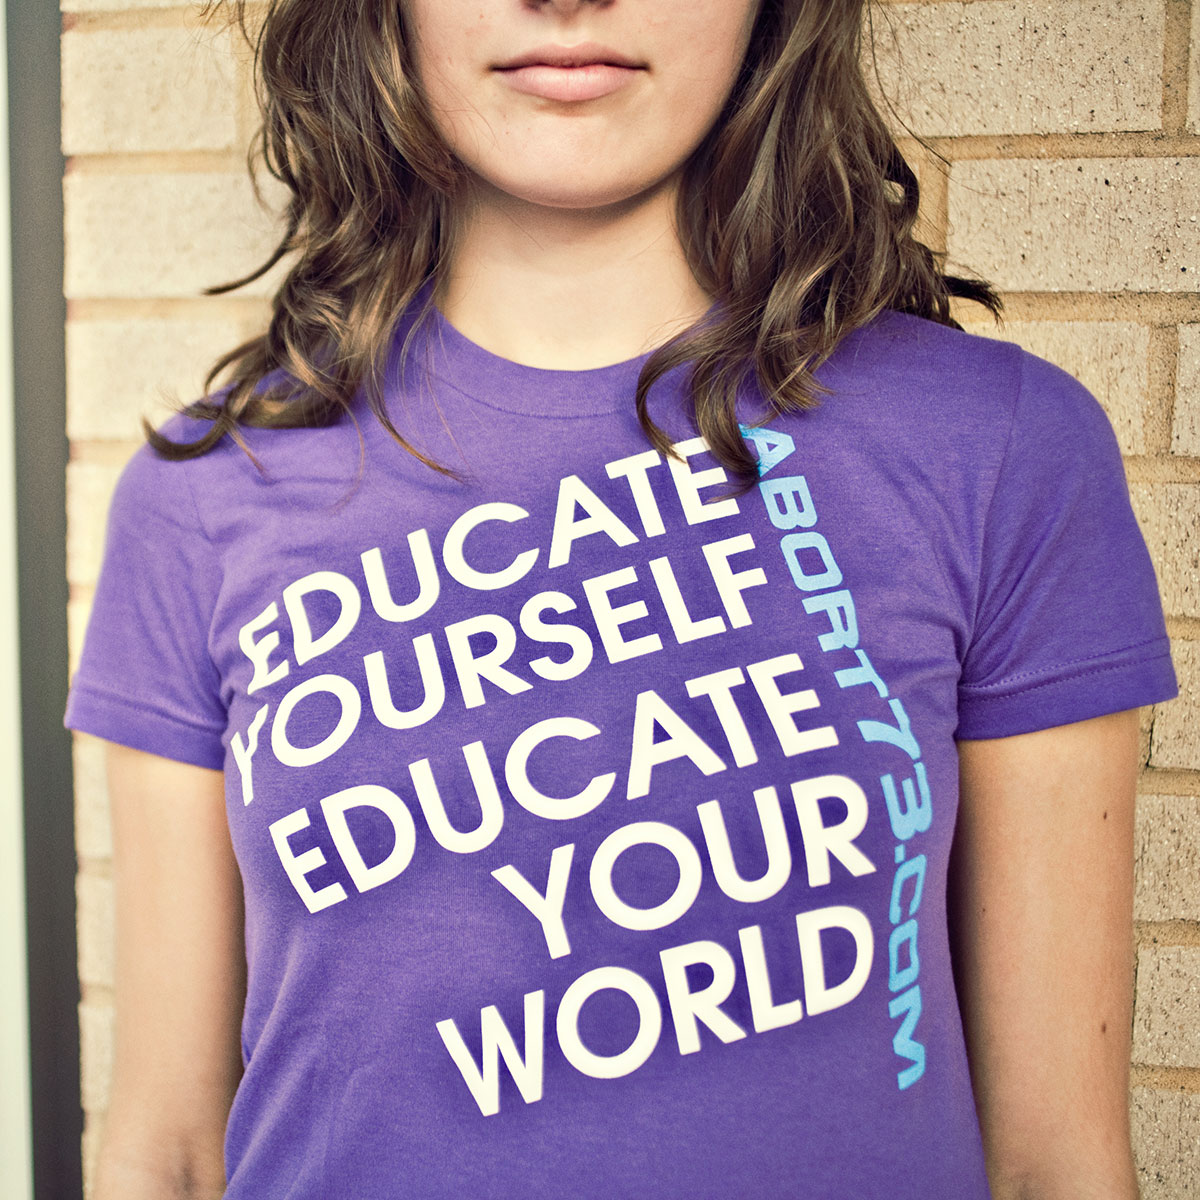 Educate Yourself. Educate Your World. (Abort73 Girls T-shirt)